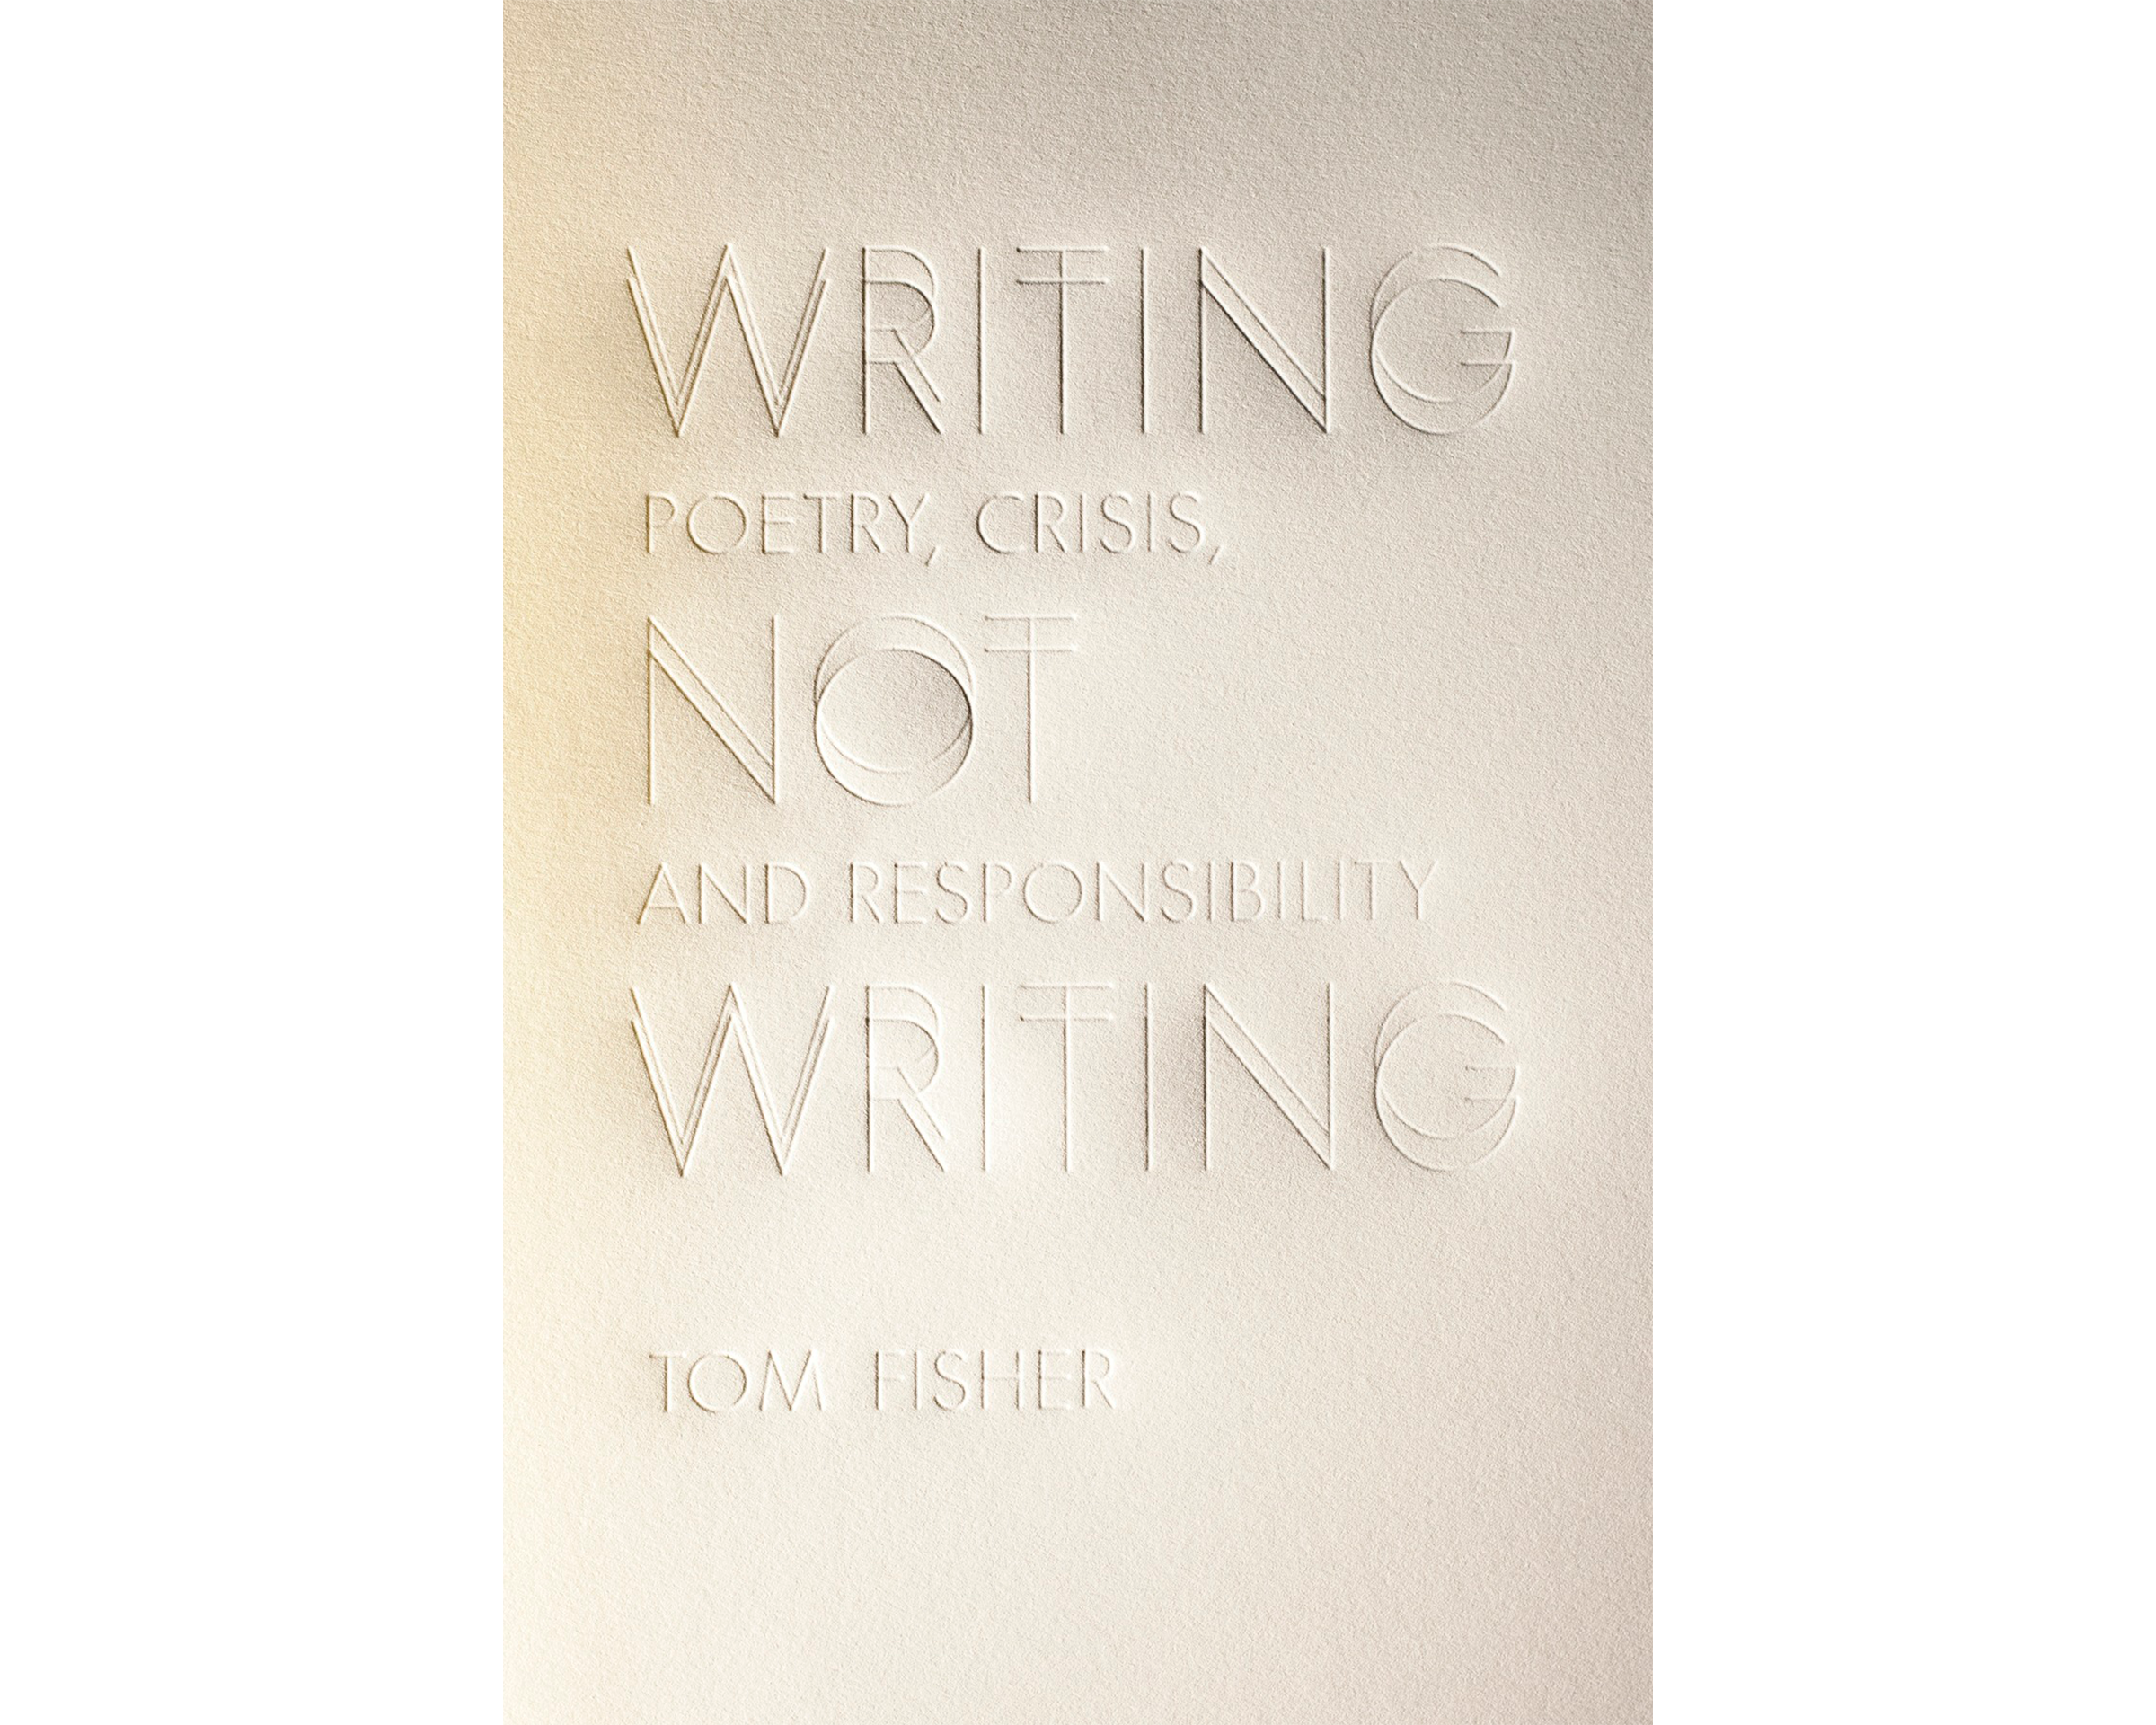 Writing Not Writing: Poetry, Crisis, and Responsibility